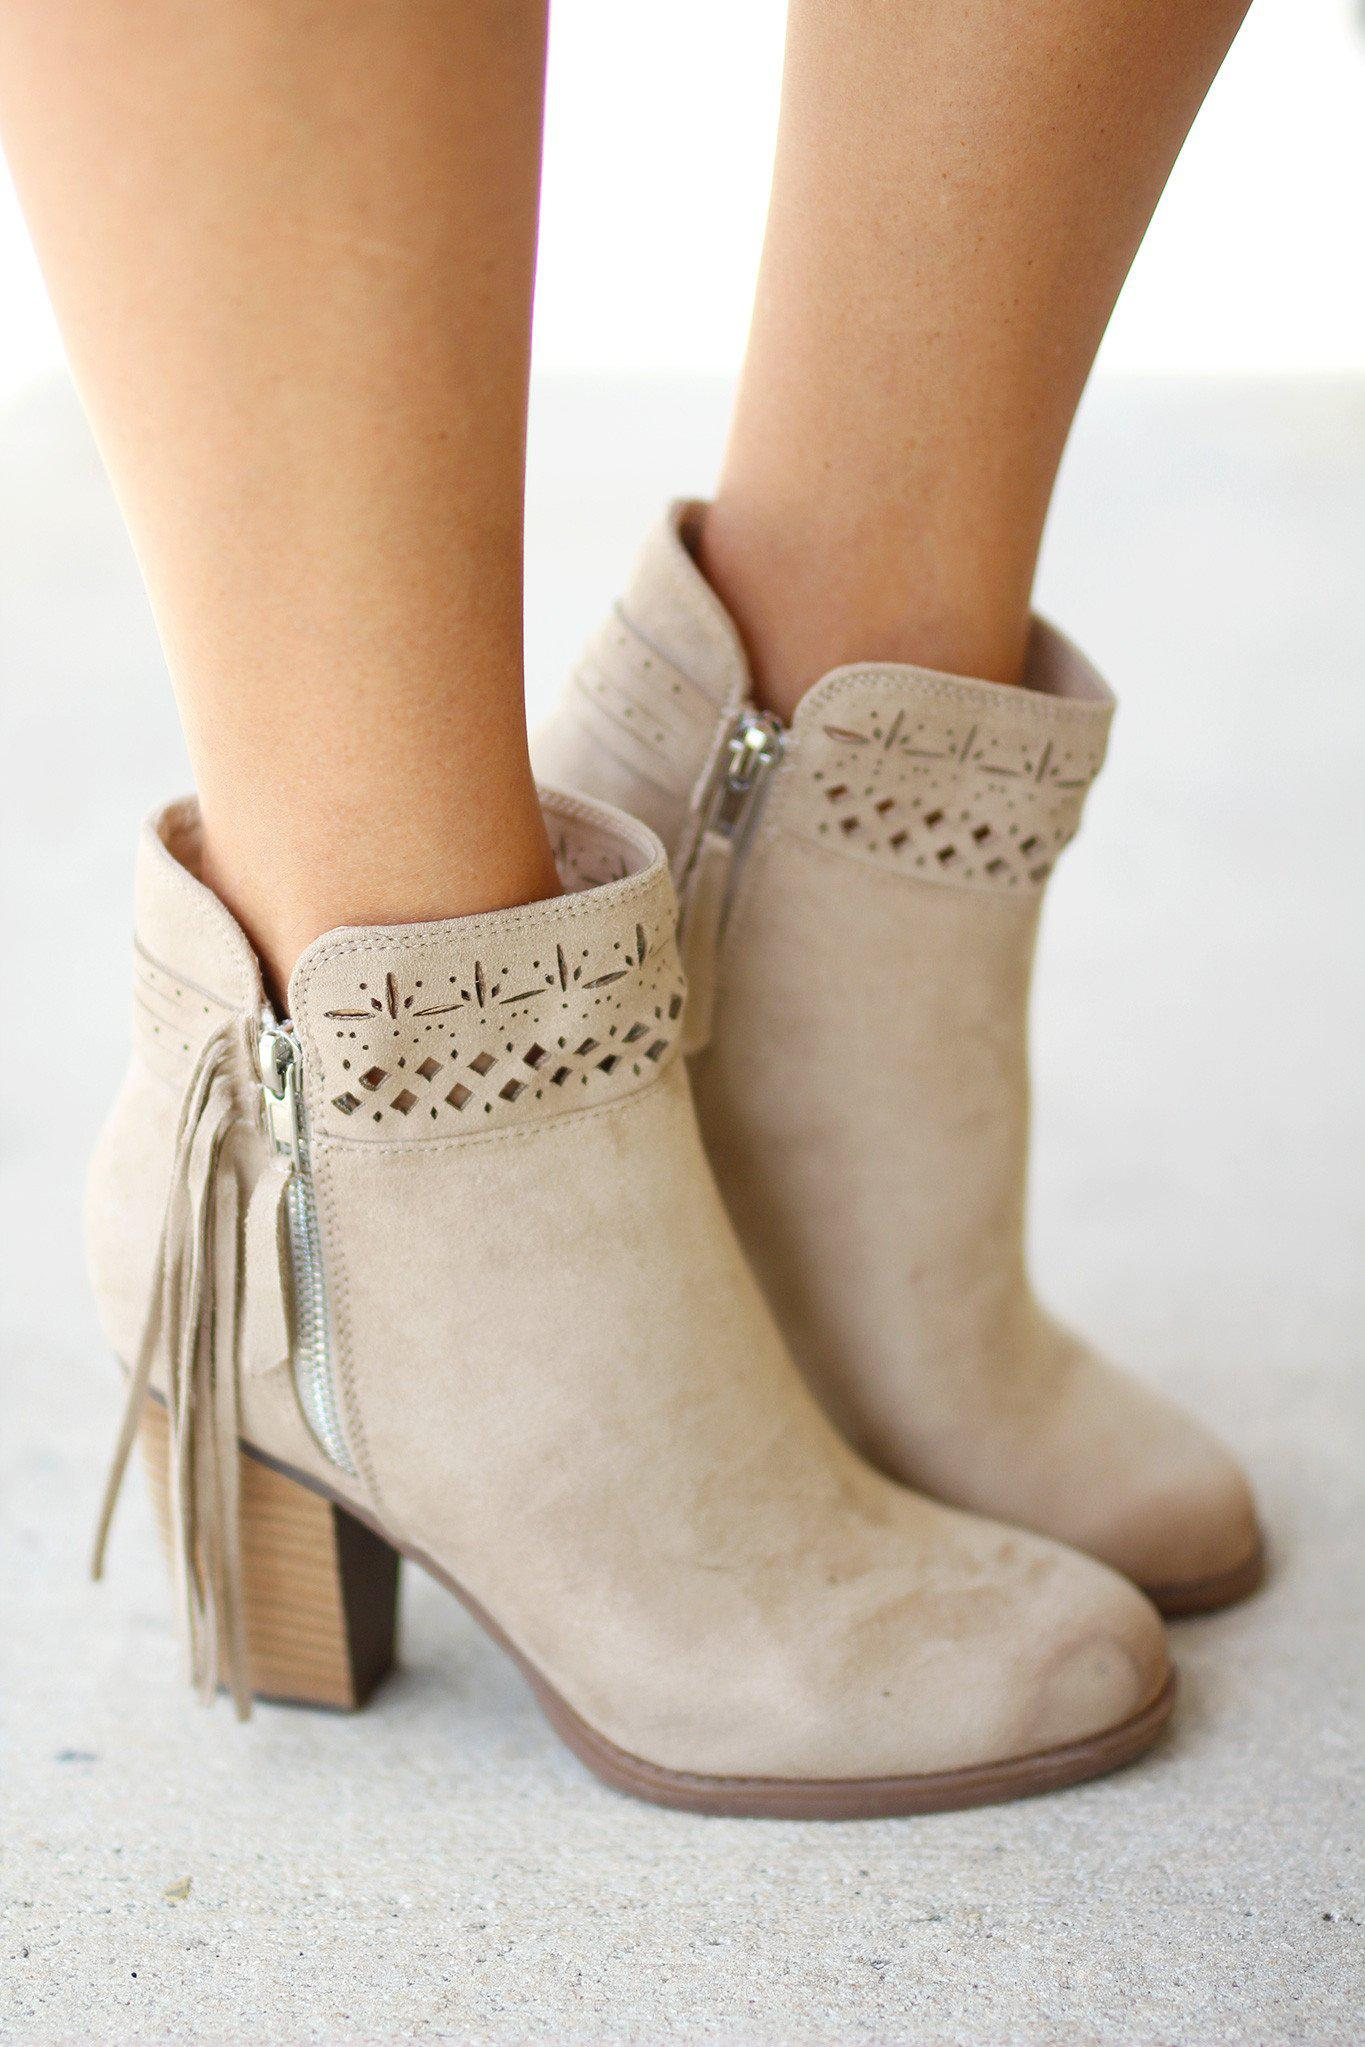 Chamonix Cream Booties